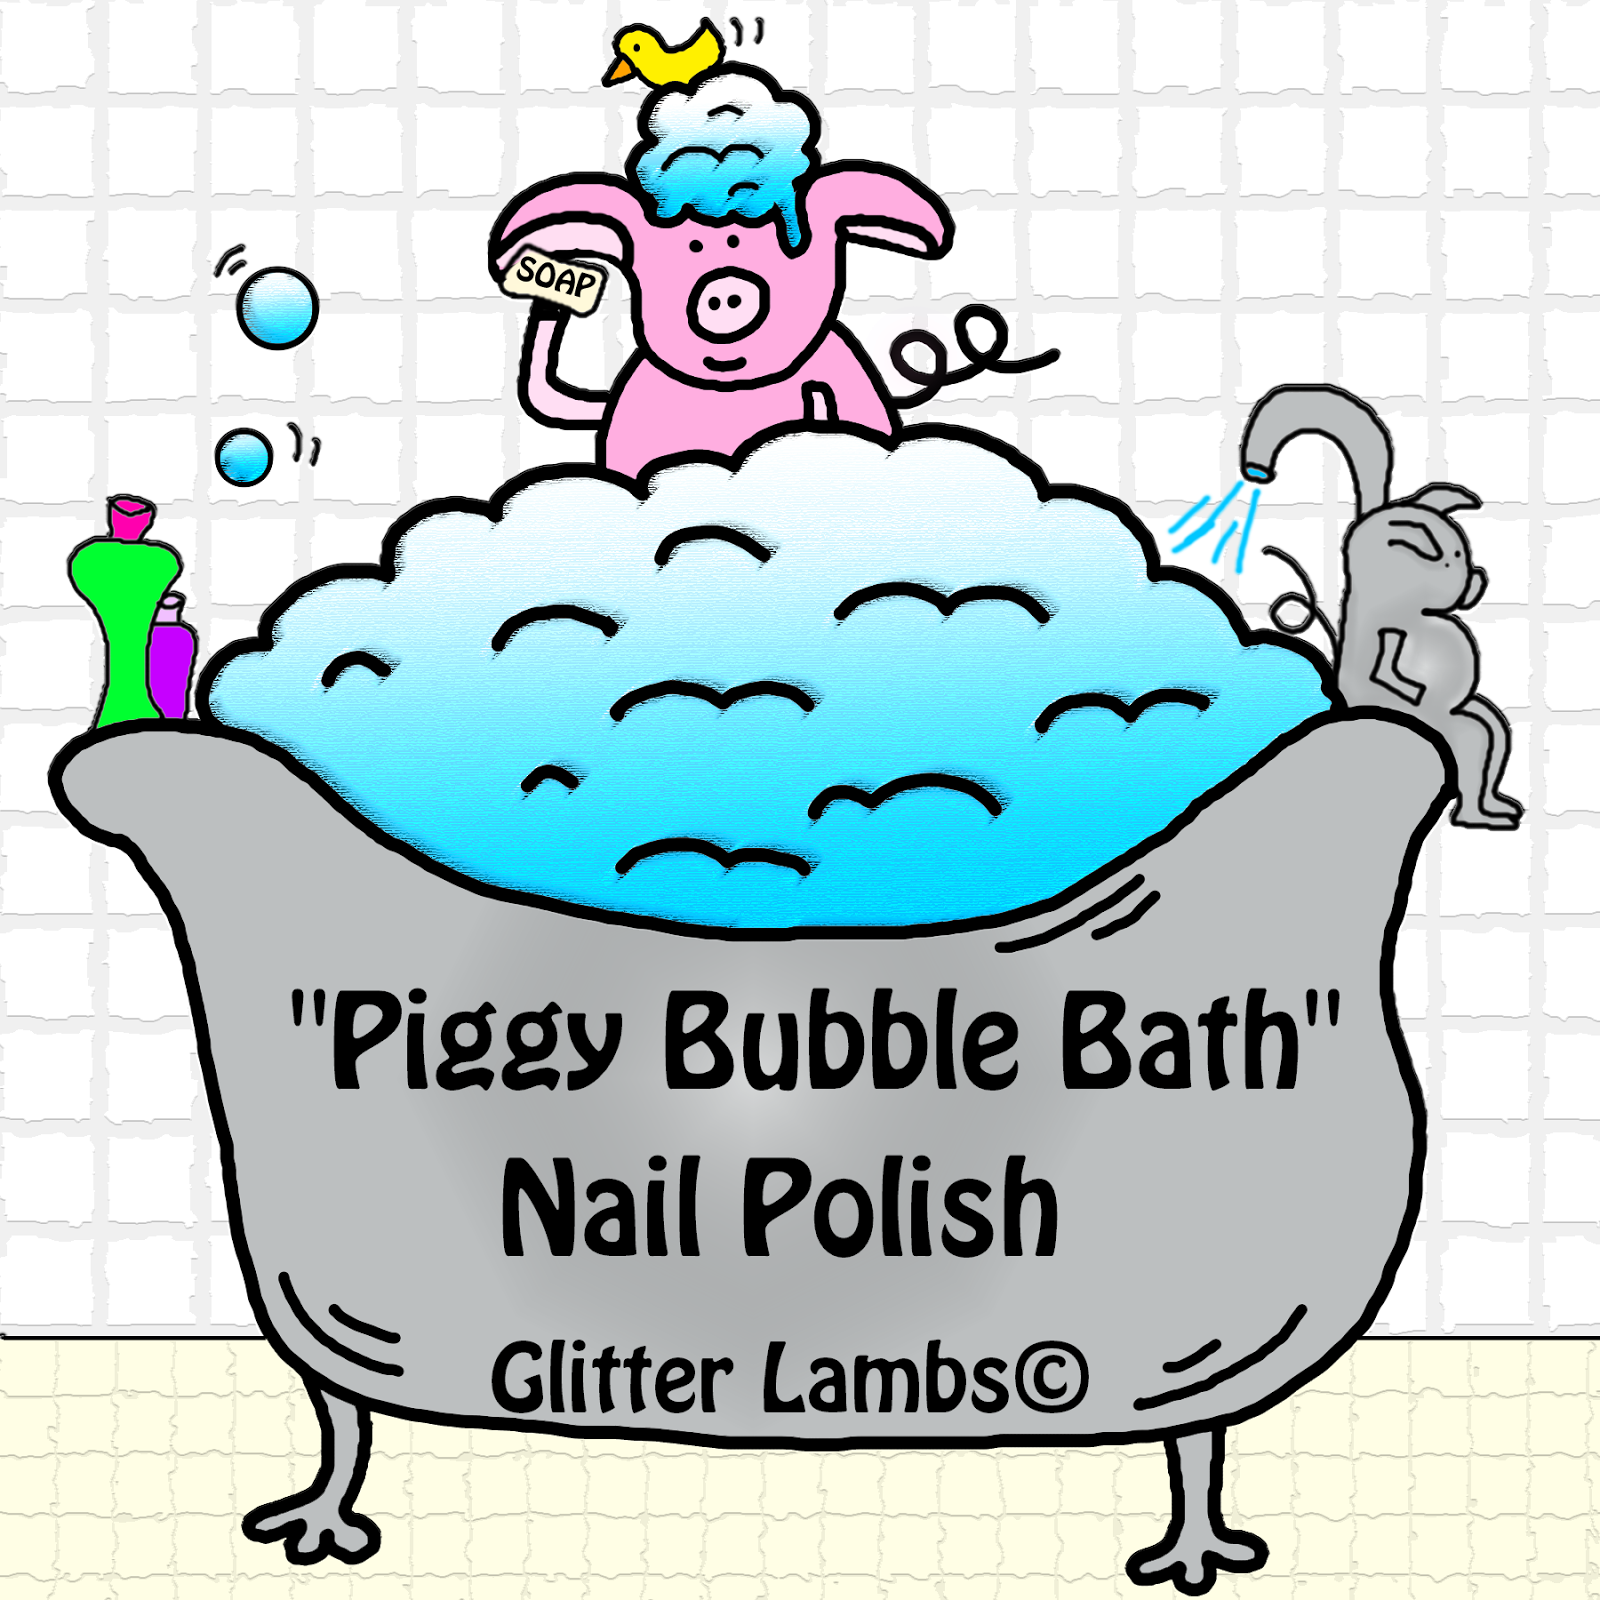 Piggy Bubble Bath  Glitter Topper Nail Polish  By Glitter Lambs